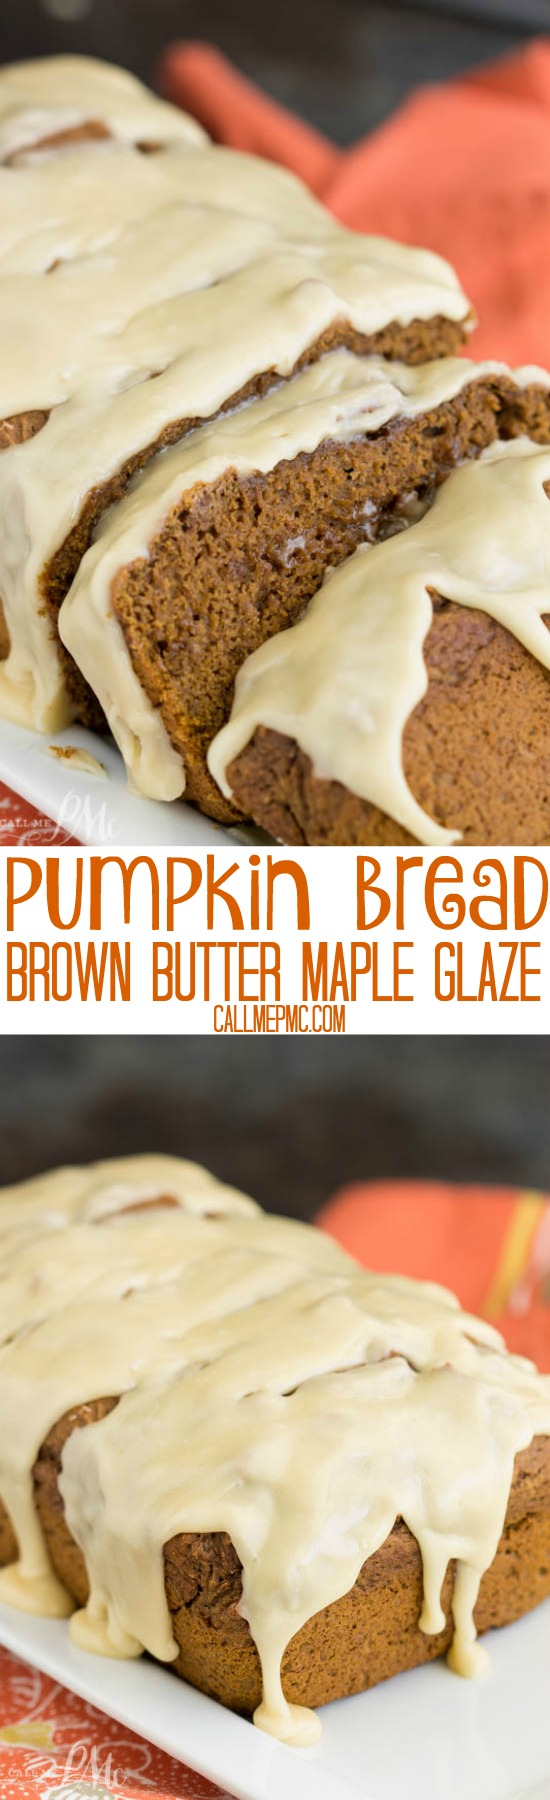 Chocolate Pumpkin Bread Recipe with Browned Butter Maple Glaze is moist, soft, and not overly sweet... except for the delectable Browned Butter Maple Glaze!